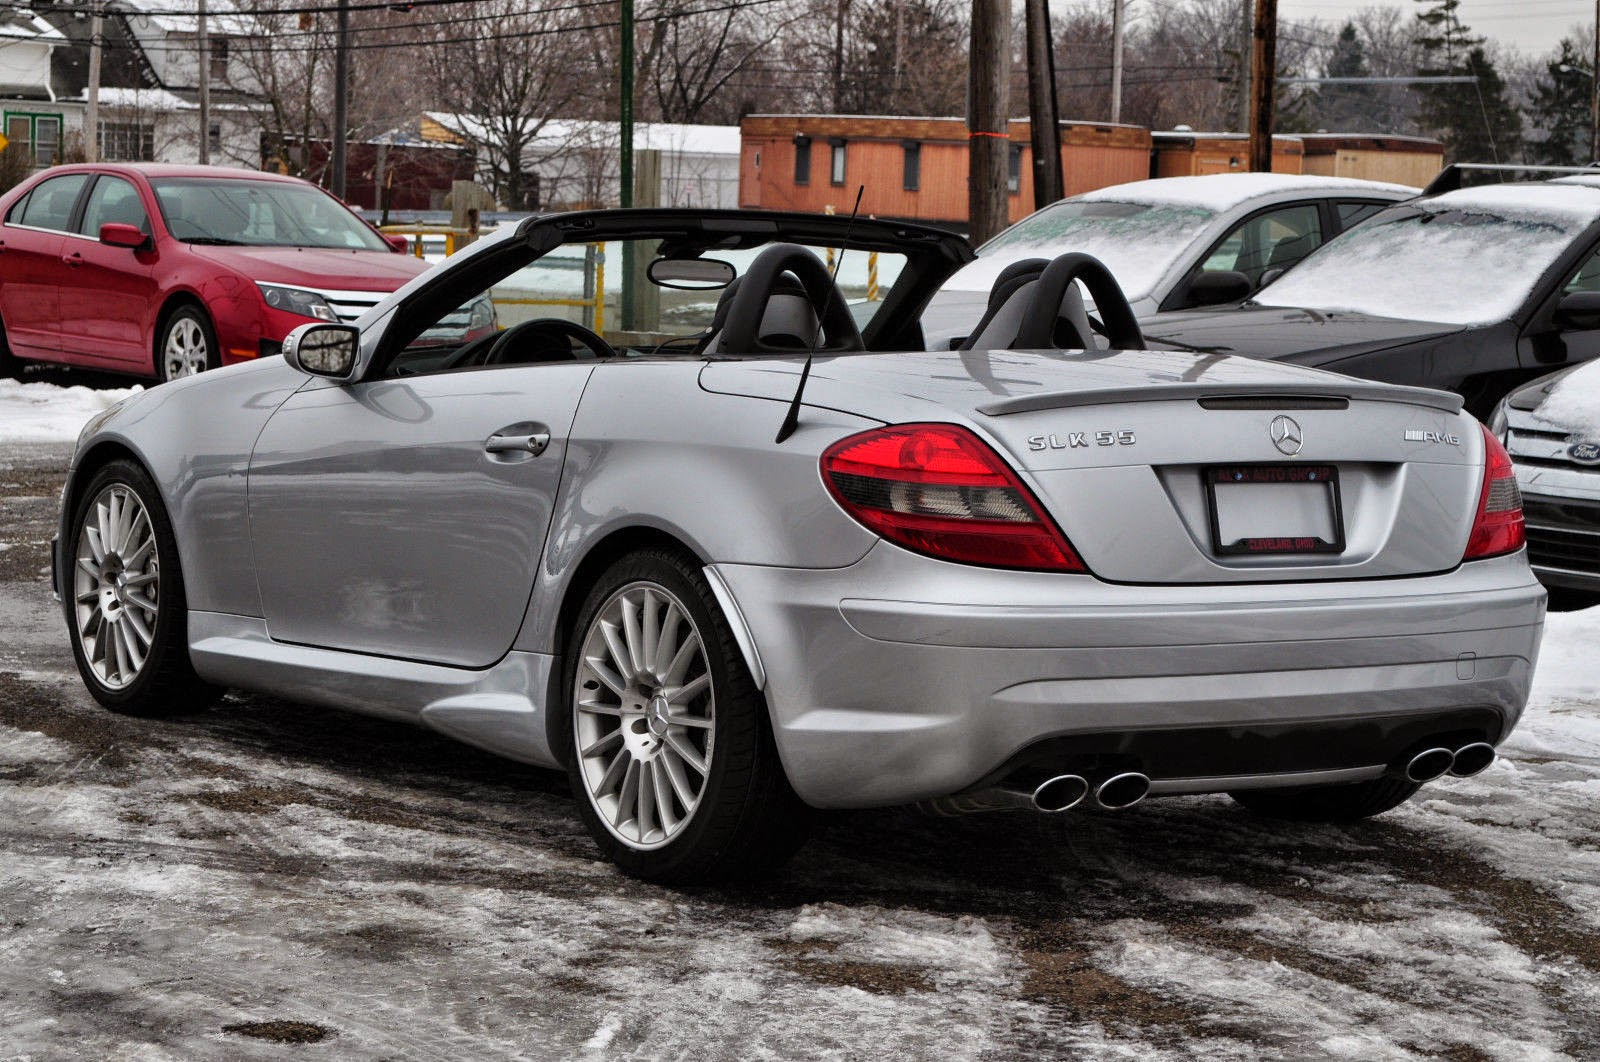 mercedes benz r171 slk55 amg benztuning. Black Bedroom Furniture Sets. Home Design Ideas